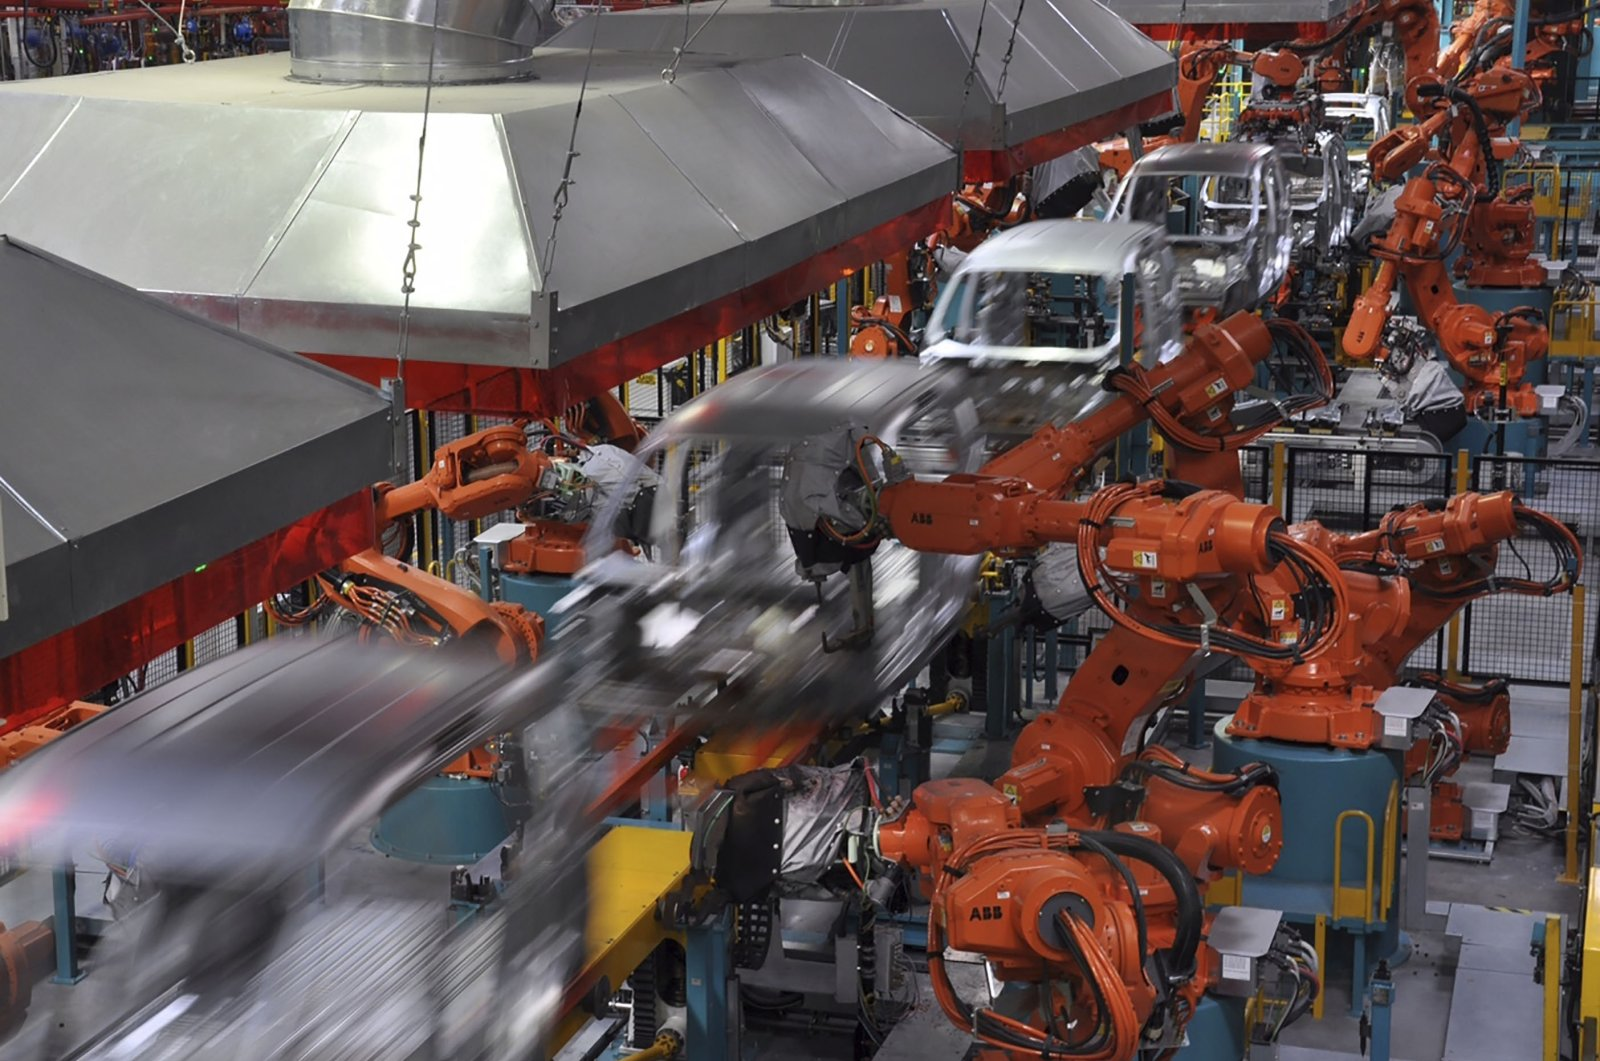 This file photo shows a production line at the Ford Otosan plant in Gölcük, Kocaeli, northwestern Turkey, April 30, 2018. (Photo courtesy of Ford Otosan)